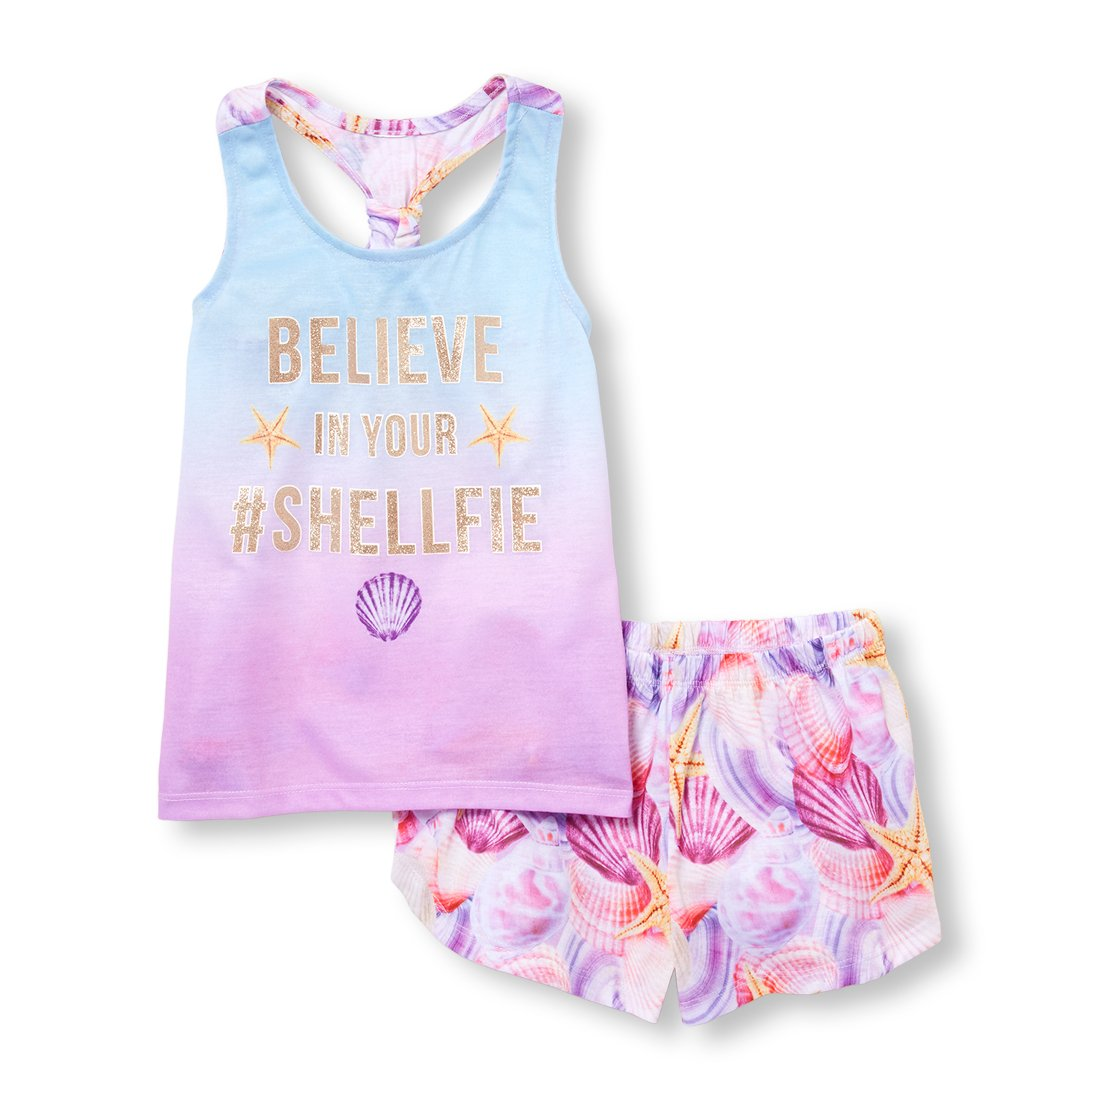 The Children's Place Big Girls' Top and Shorts Pajama Set, Pixiedust, L (10/12)